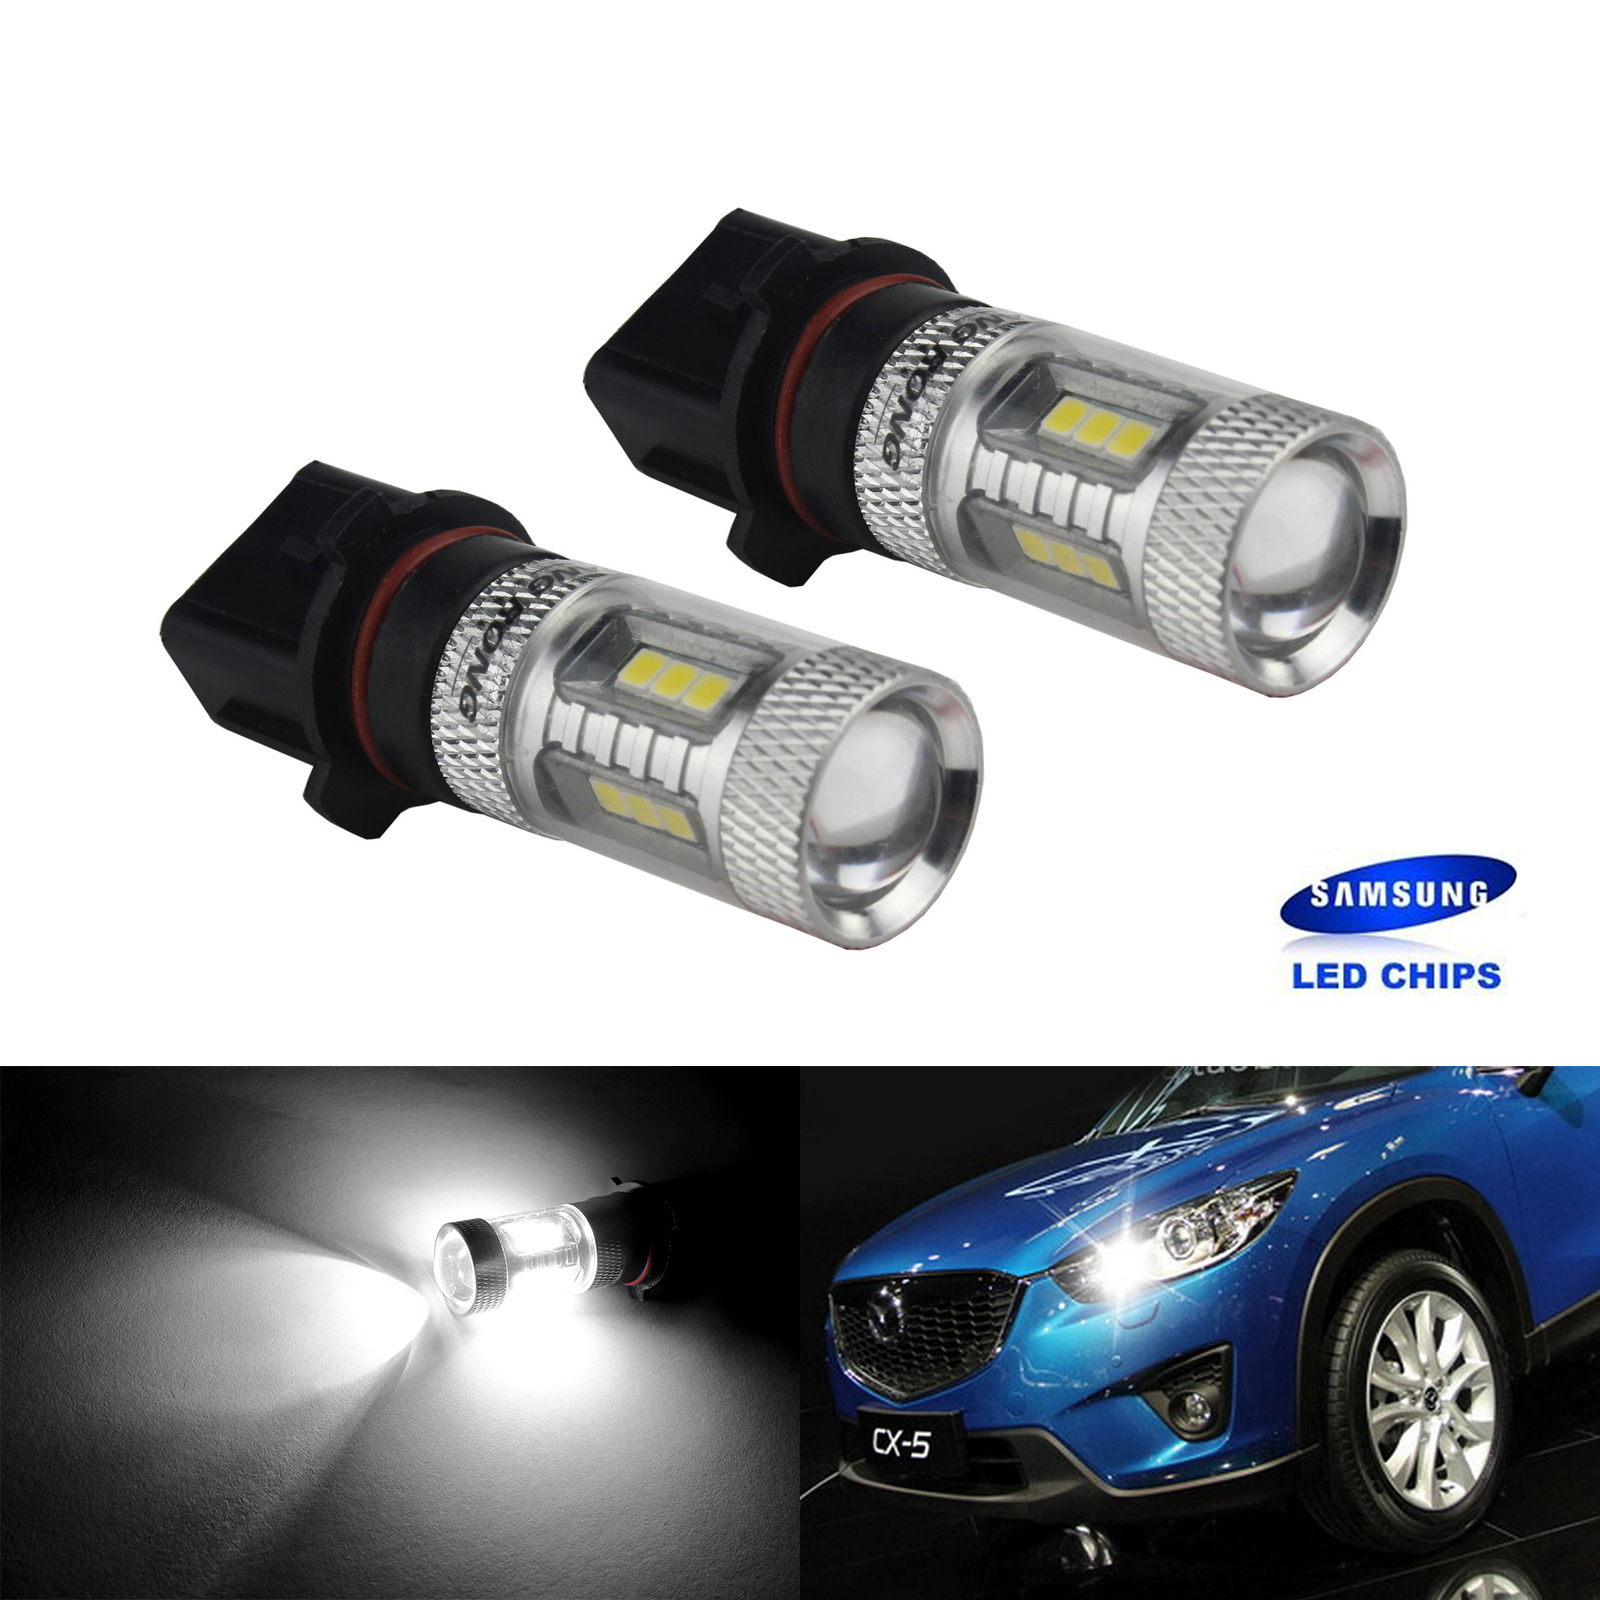 ANGRONG 2pcs P13W PSX26W SAMSUNG 15 SMD LED Fog Daytime Side Light Bulb For Audi A4 B8 2008+